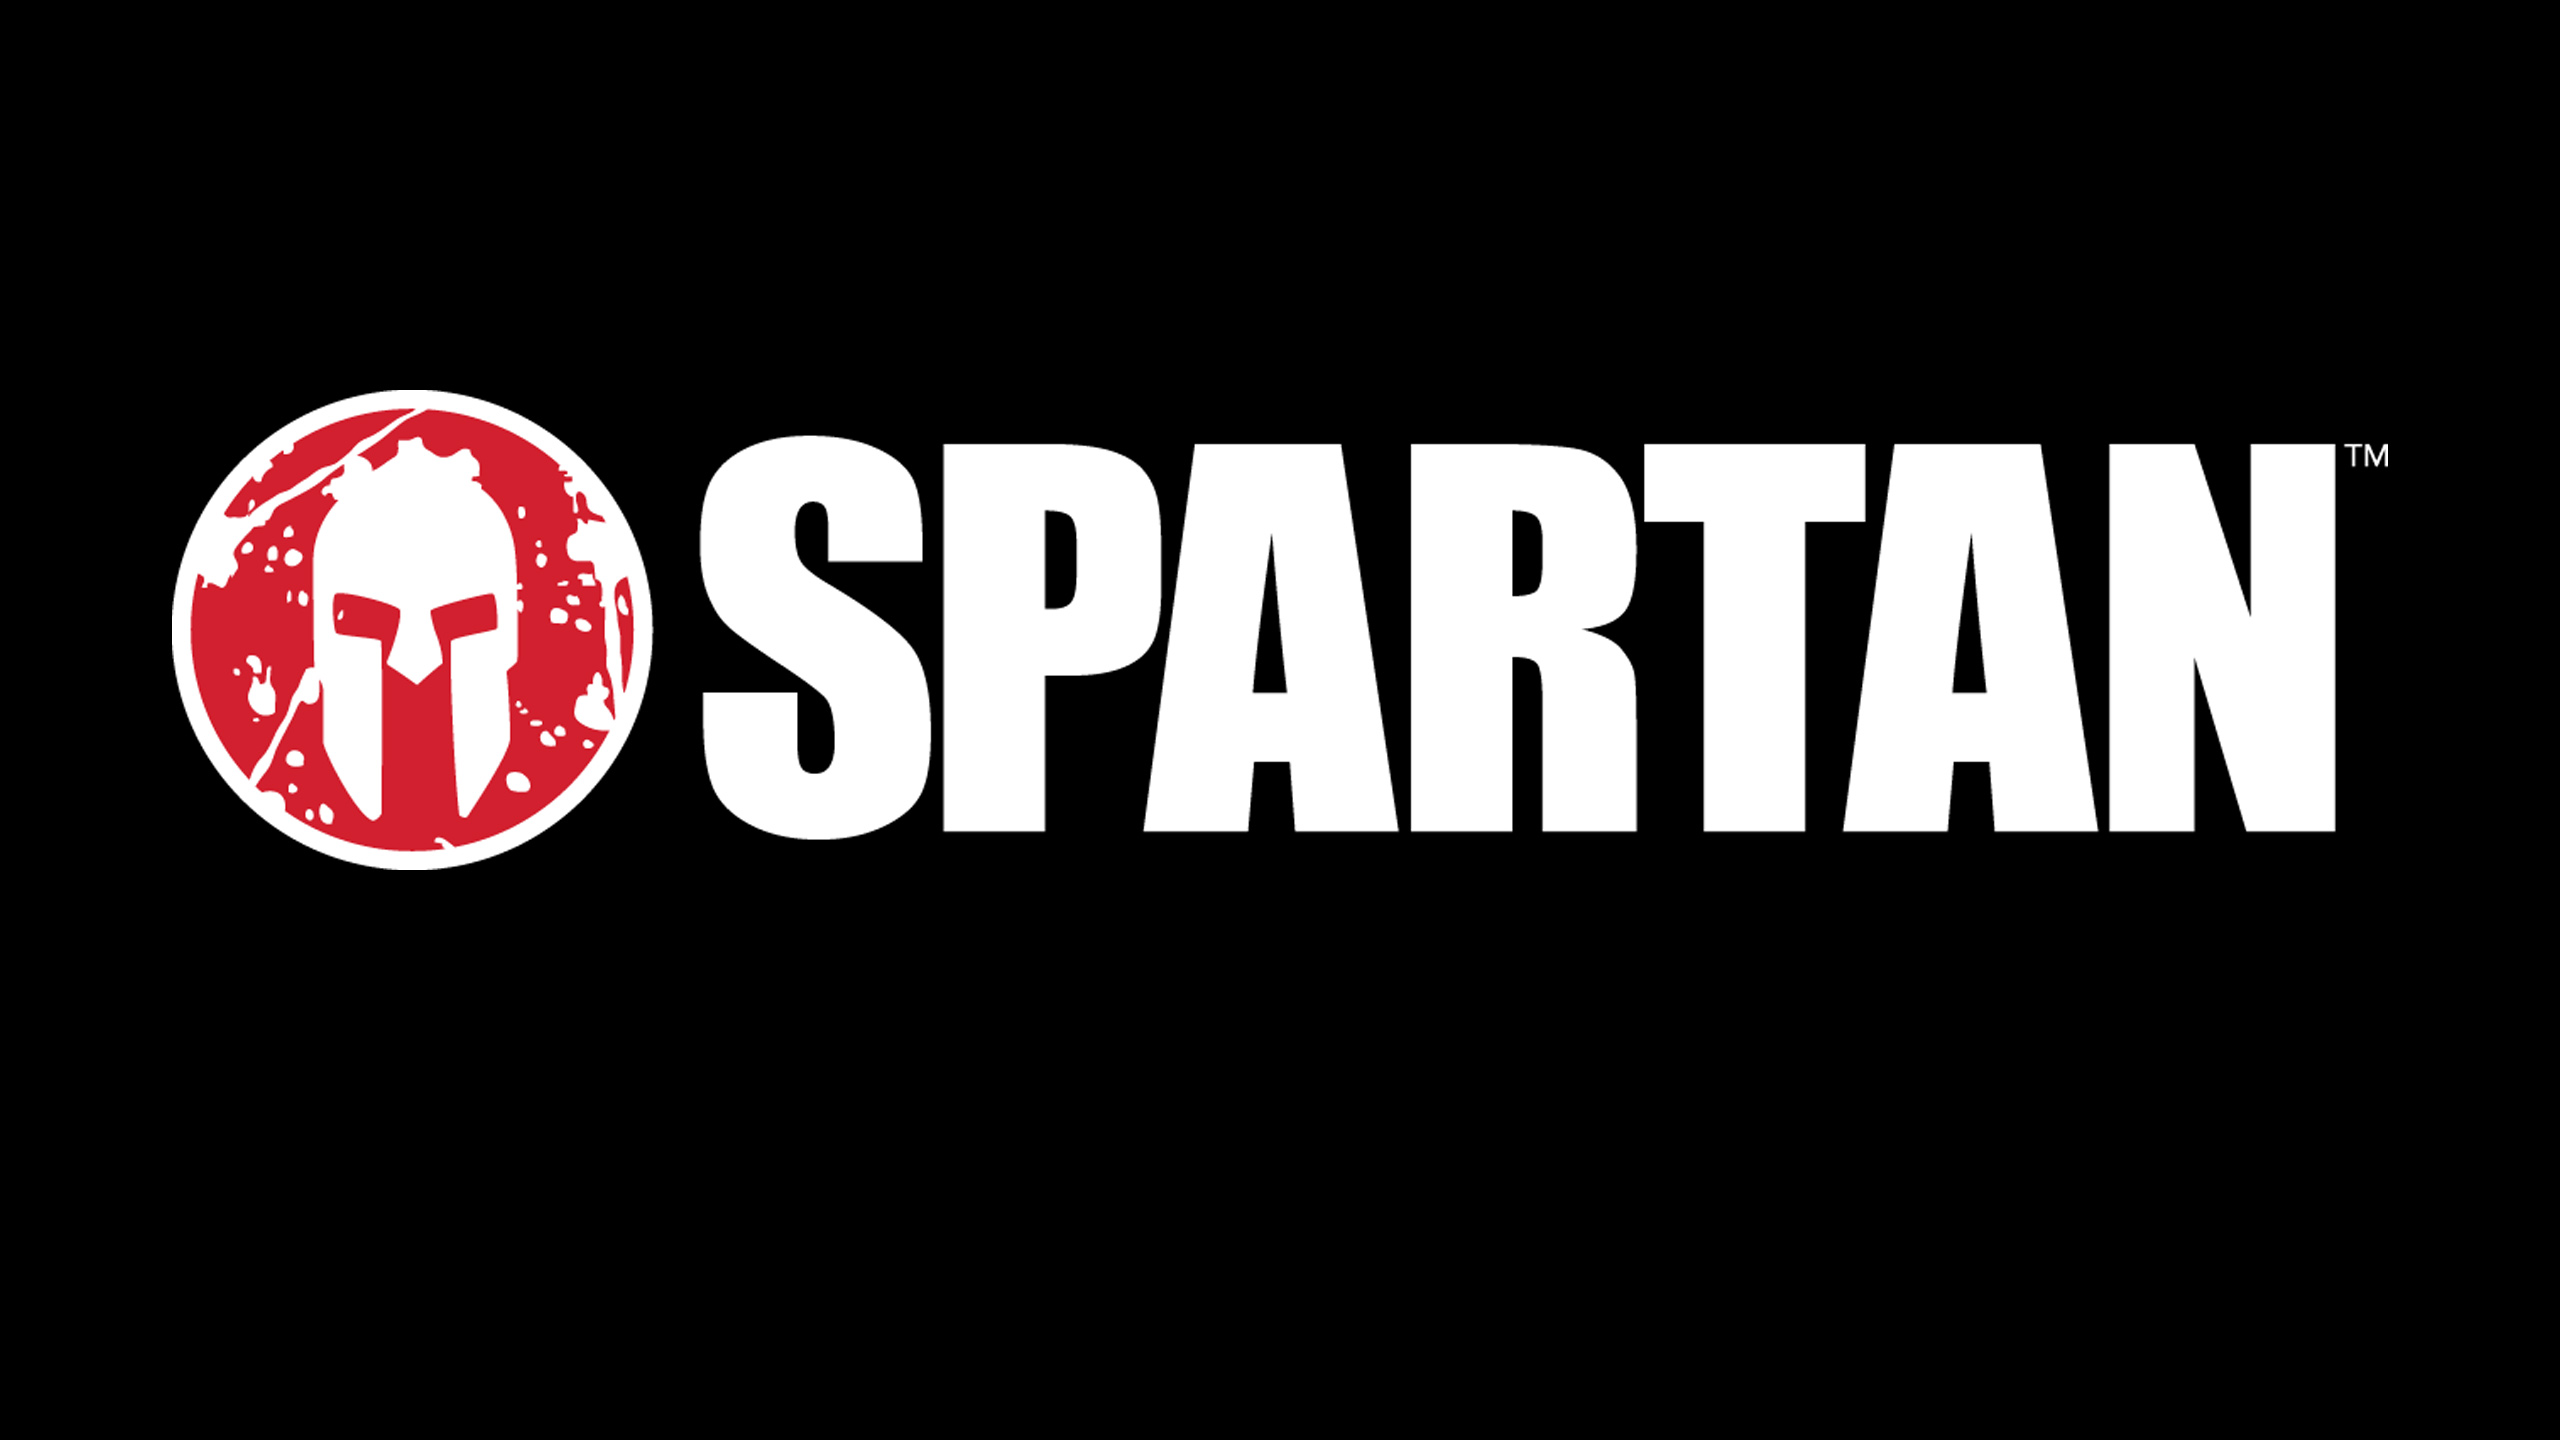 Spartan: US Mountain Championships